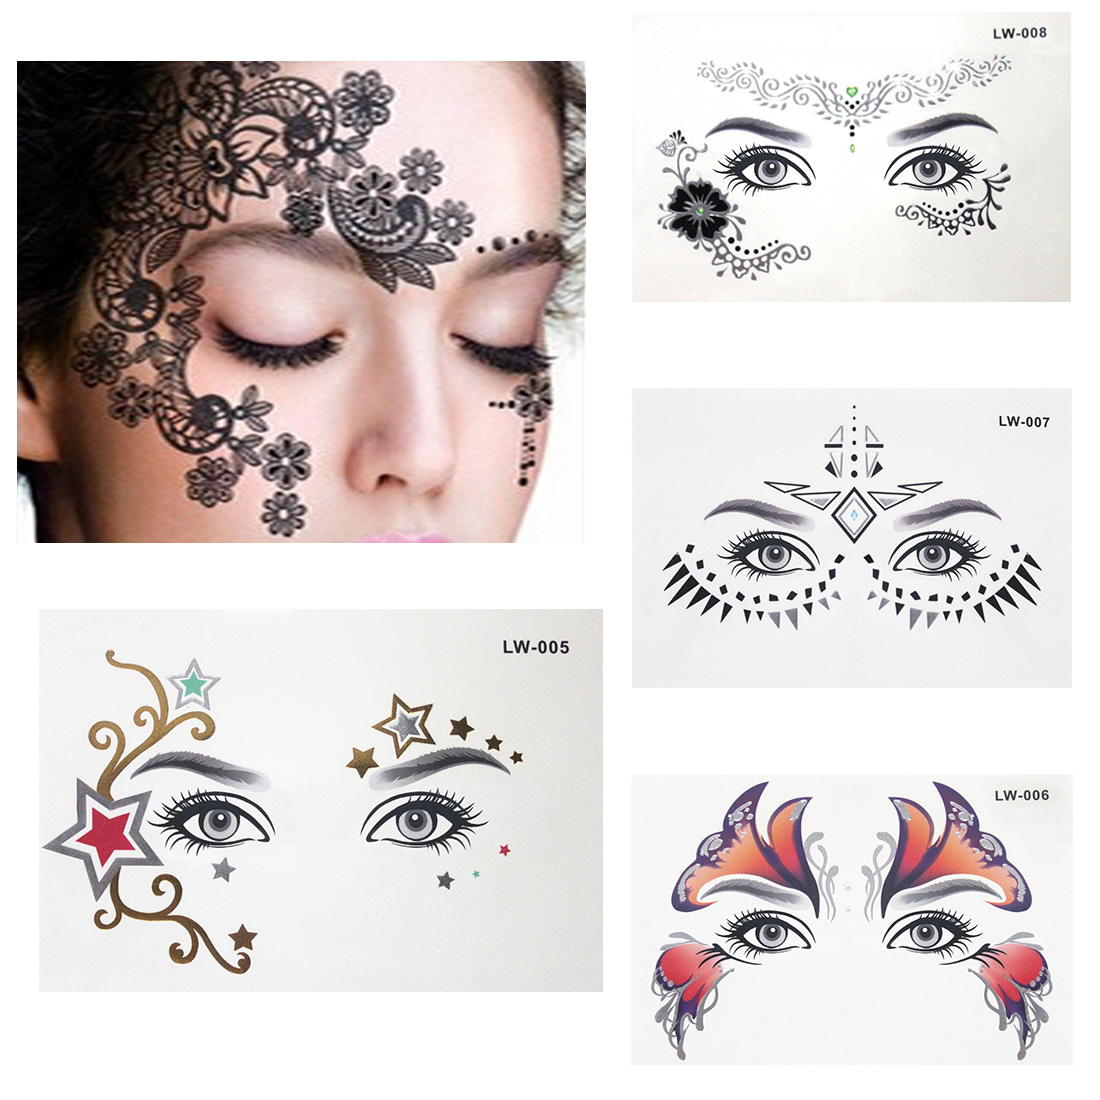 Hot Stamping Face Forehead Eye Makeup Tattoo Sticker Temporary Tatoo Fake Tatto Body Art Cosmetic Tattoo Supplies For Girl Boy